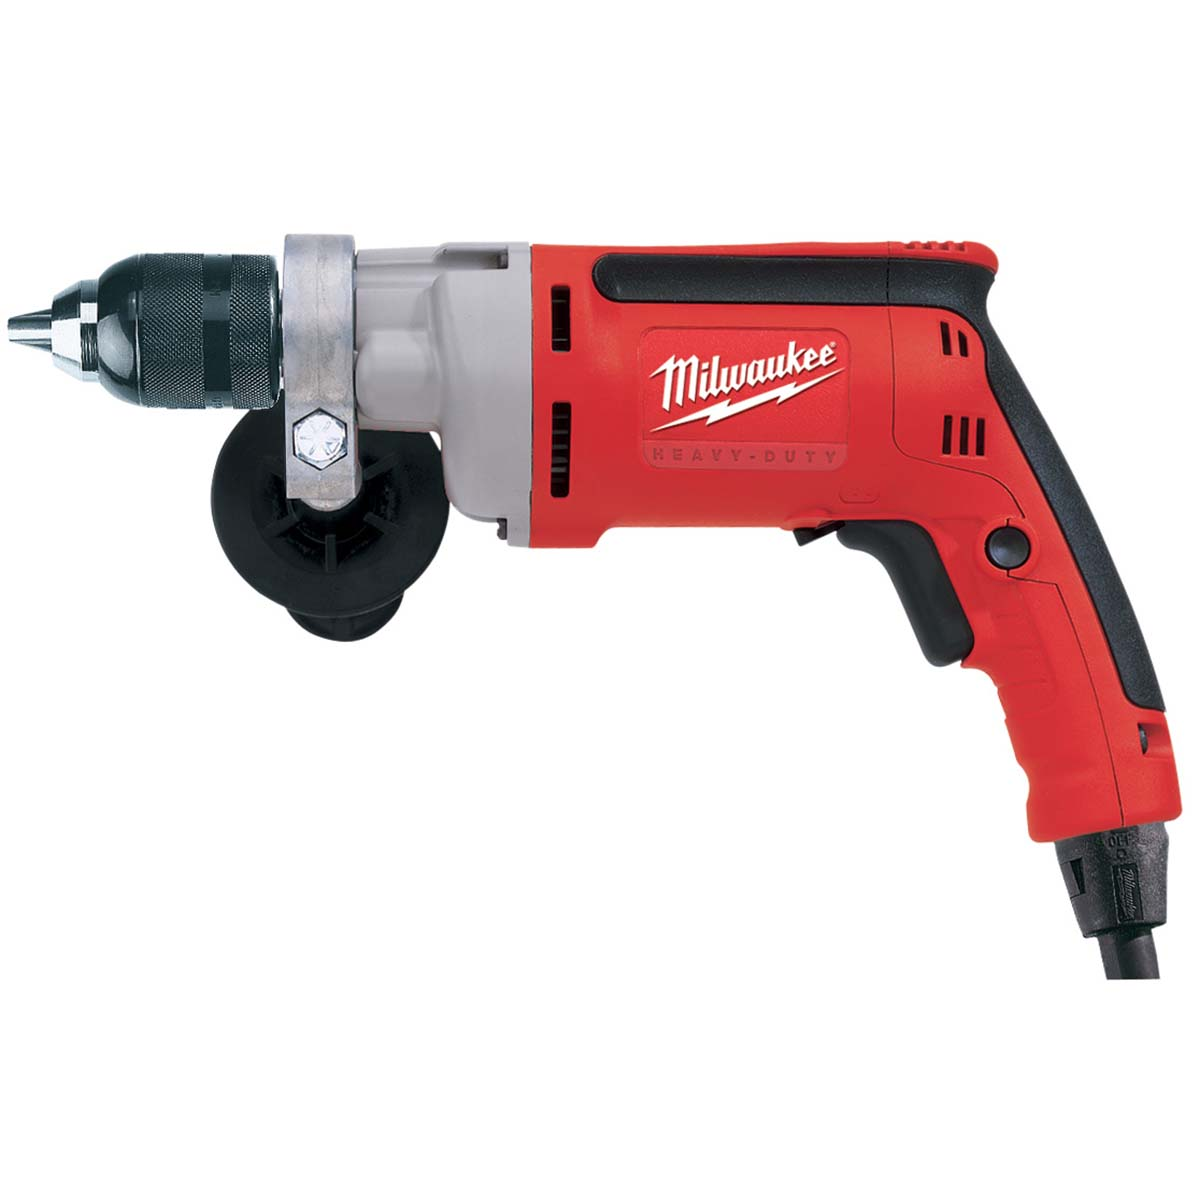 "1/2""  Magnum Drill, 0-850 RPM with All Metal Chuck and QUIK-LOK  cord"